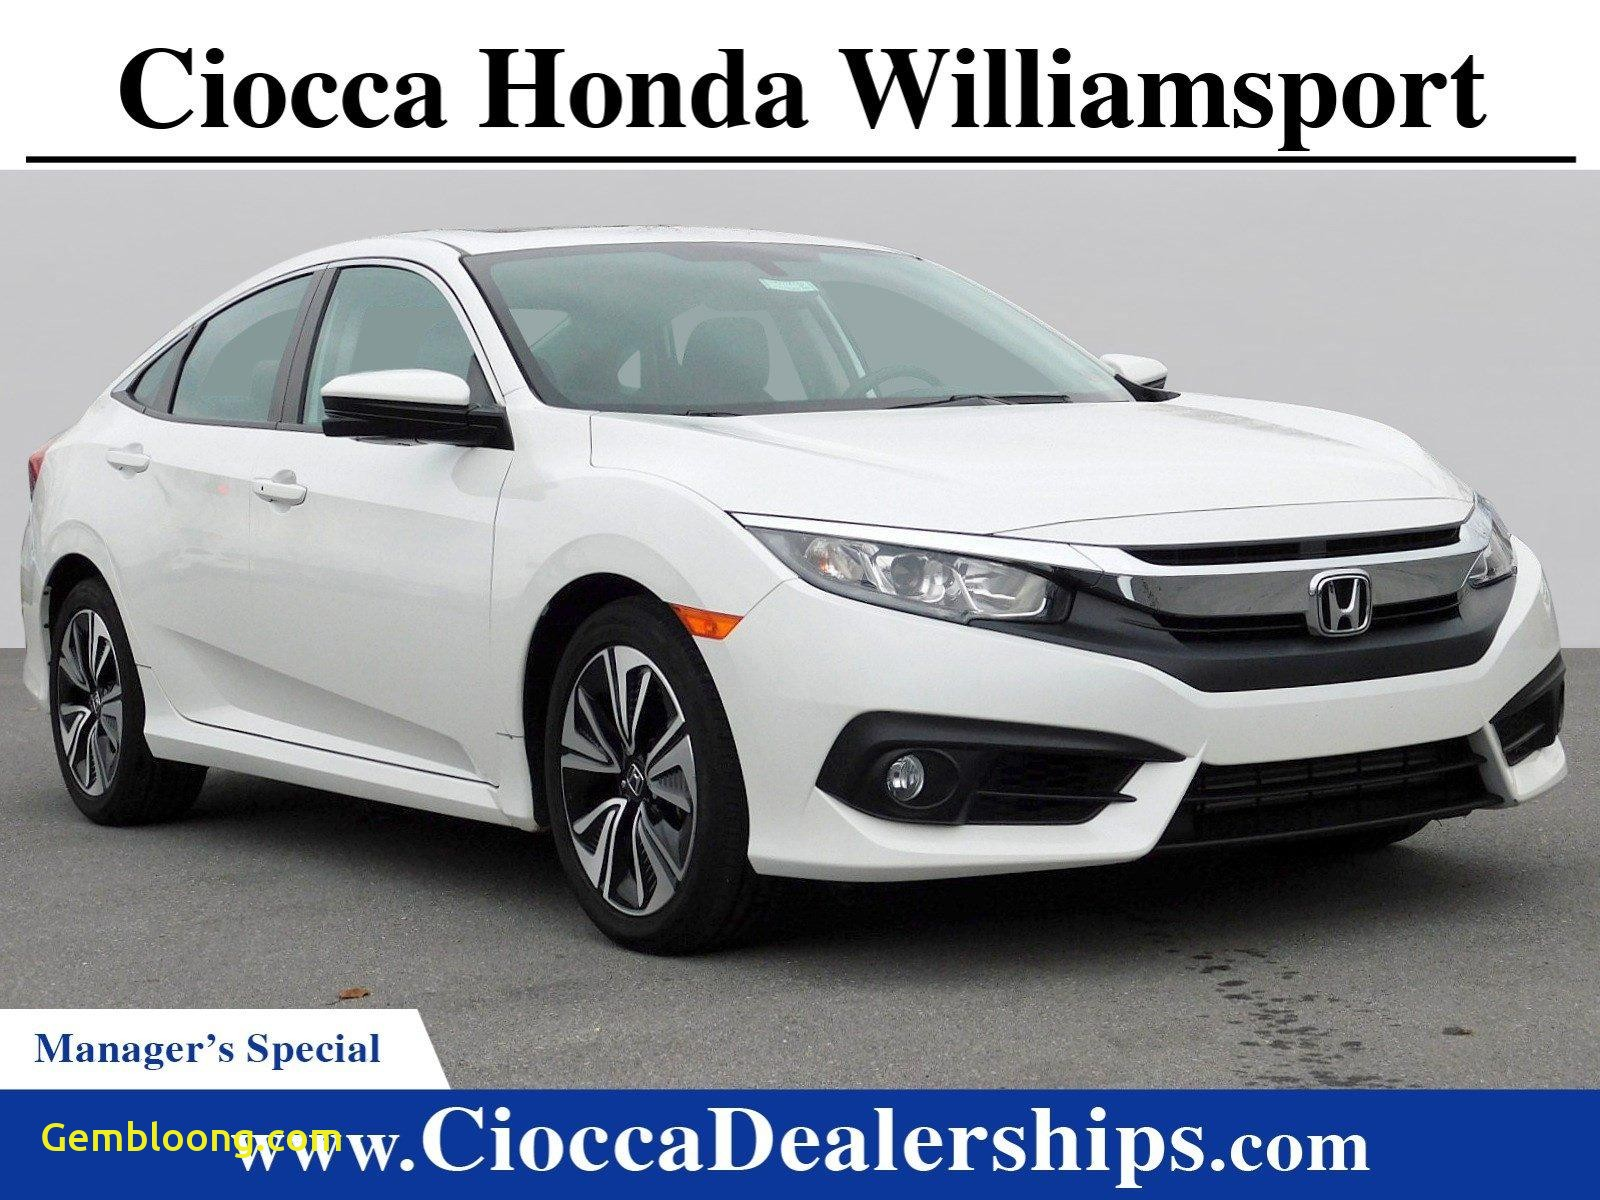 Used Cars for Sale Near Me Honda Civic New Used 2017 White orchid Pearl Honda Civic Sedan for Sale In